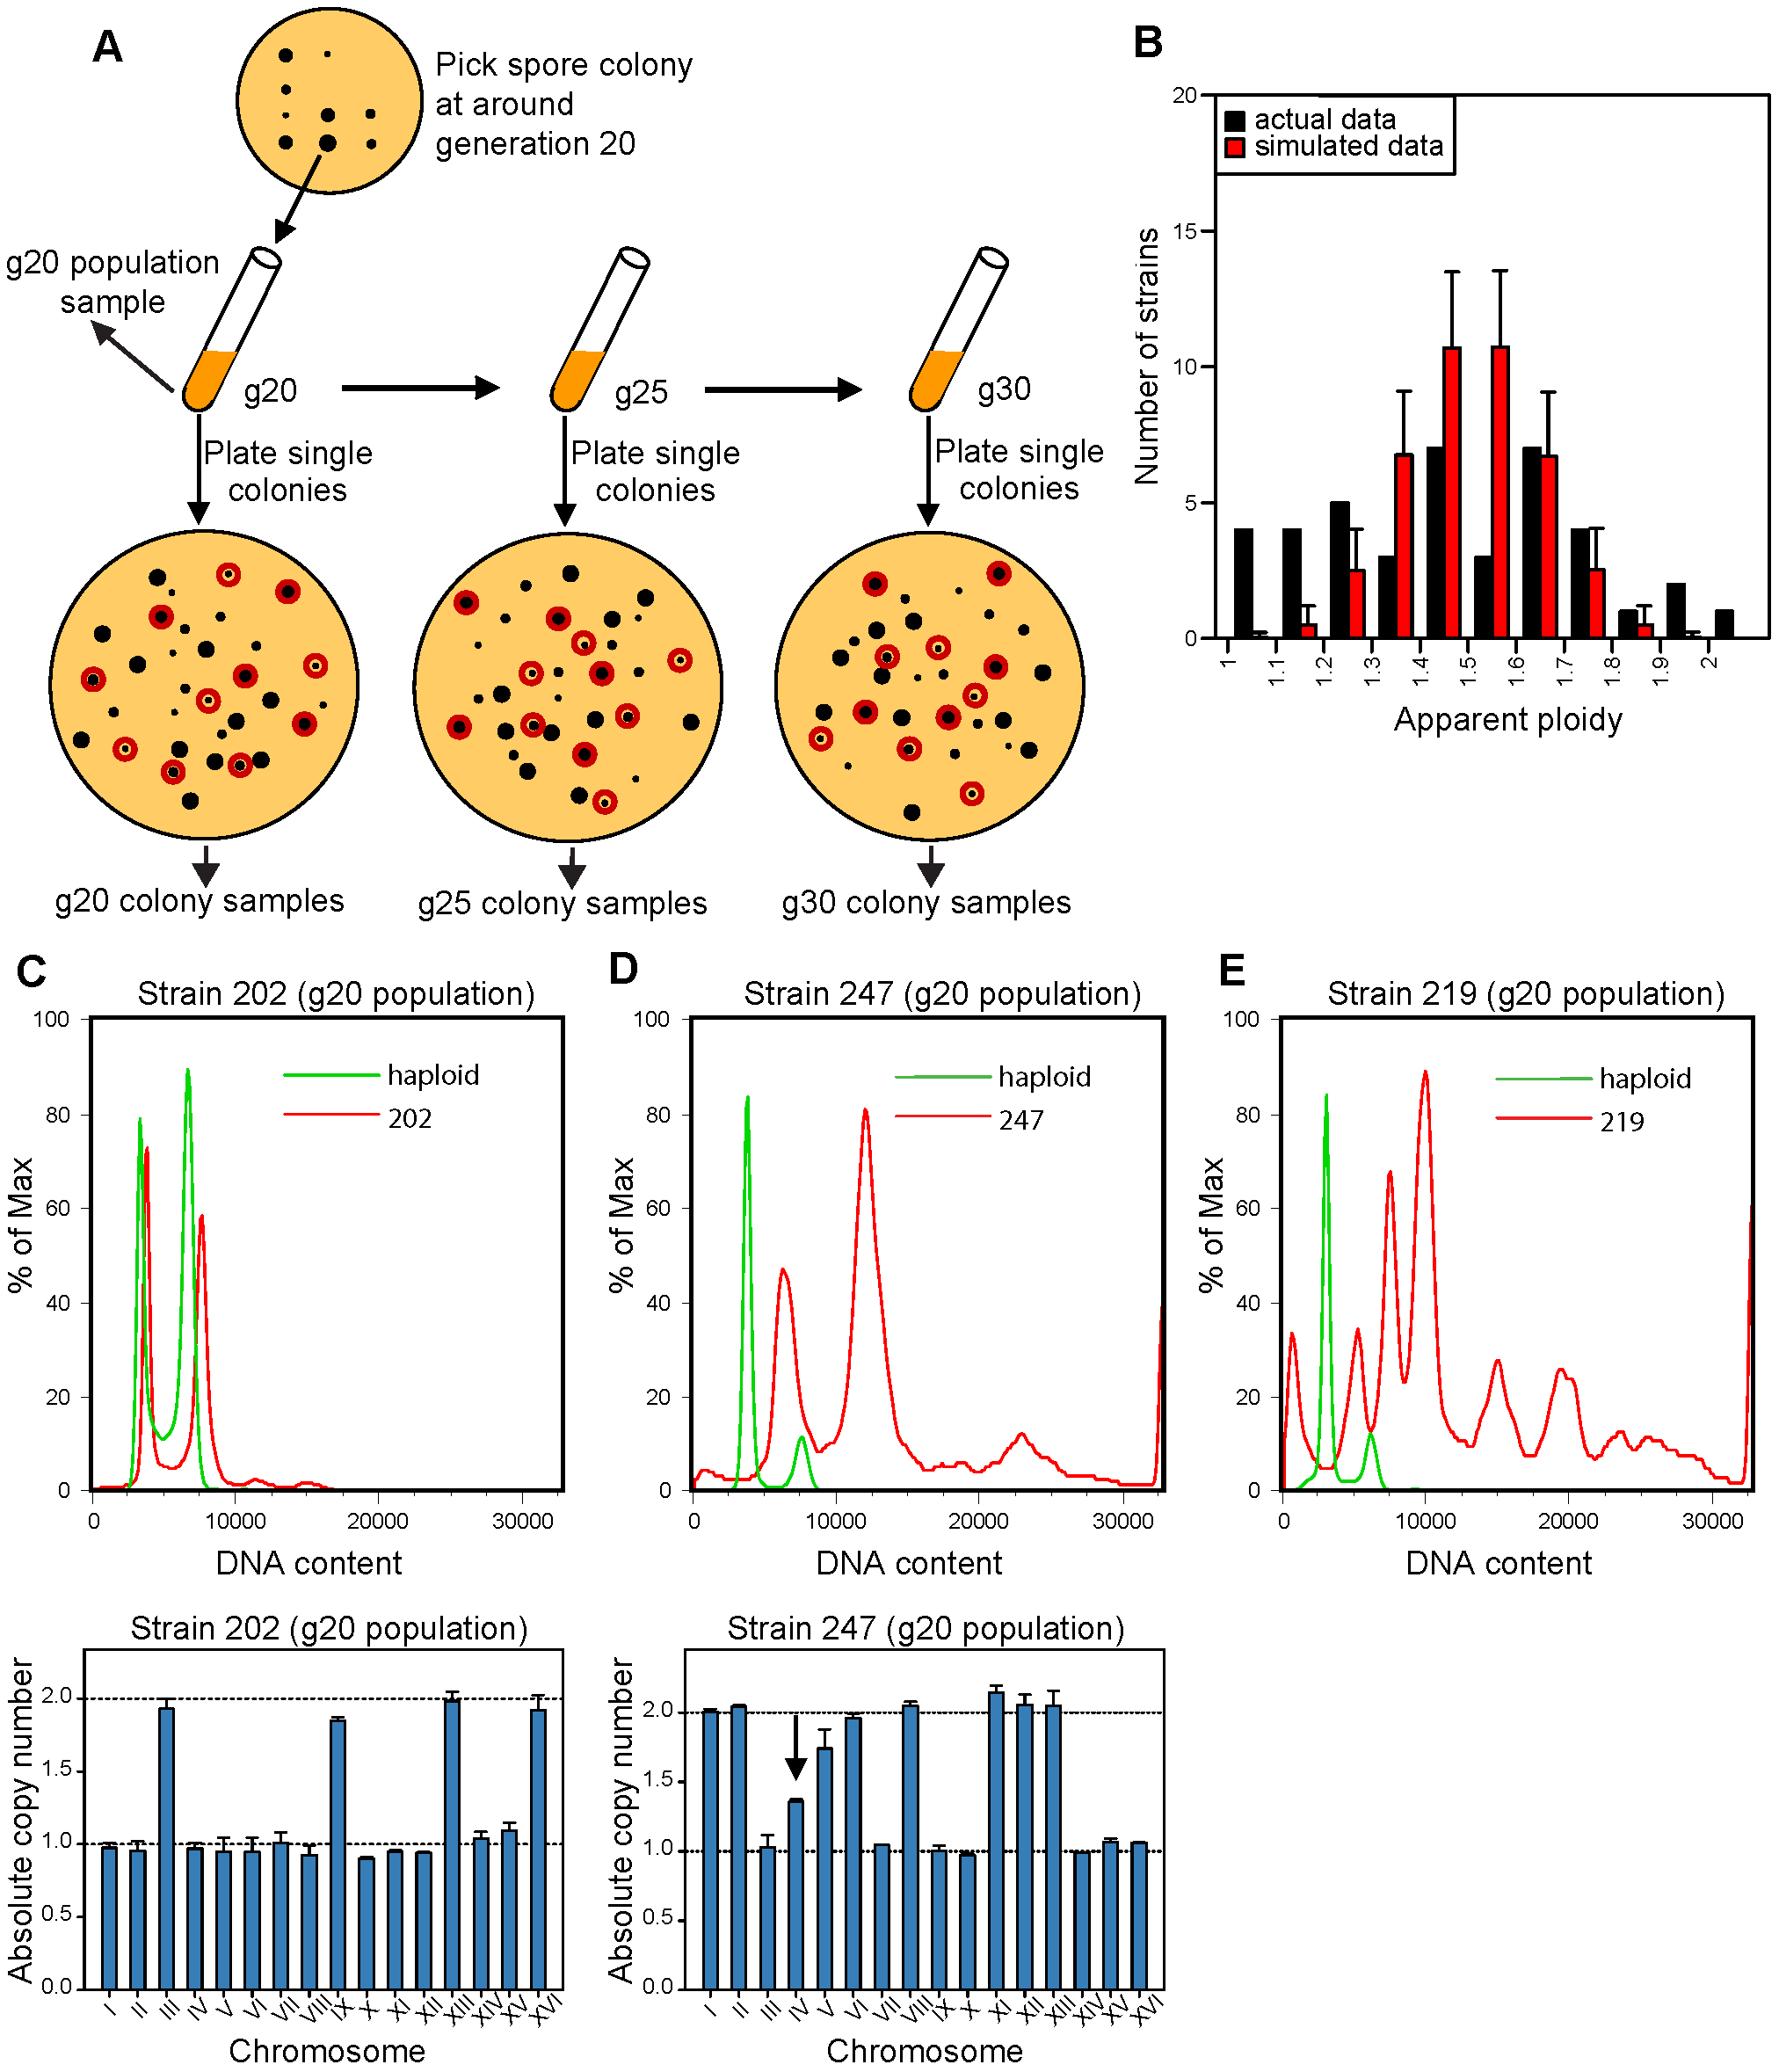 Isolation and karyotype analysis of aneuploid spore colonies after triploid meiosis.